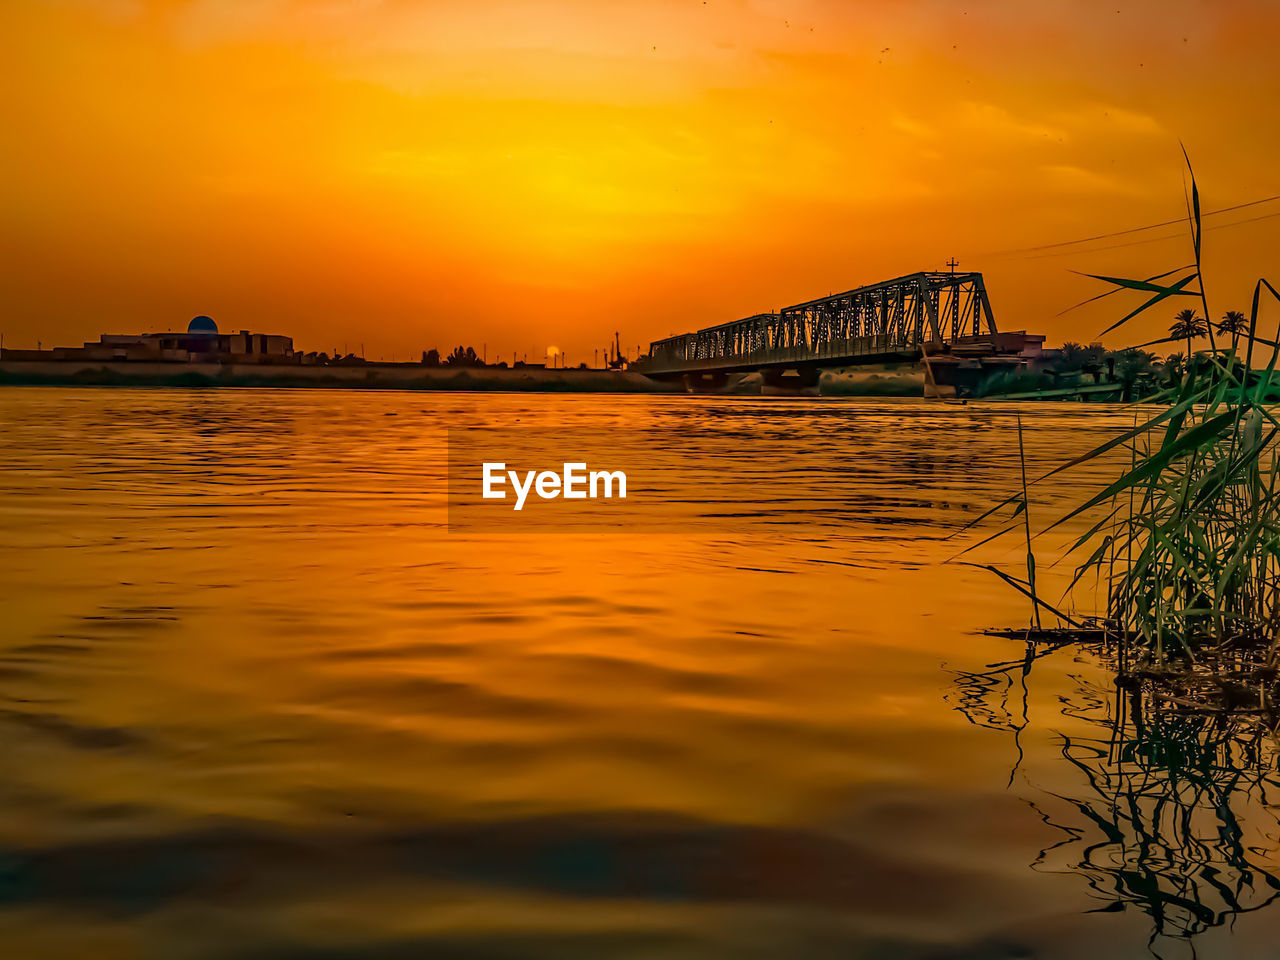 sunset, sky, orange color, water, built structure, architecture, reflection, nature, bridge - man made structure, waterfront, beauty in nature, river, no people, cloud - sky, outdoors, transportation, silhouette, scenics, building exterior, tree